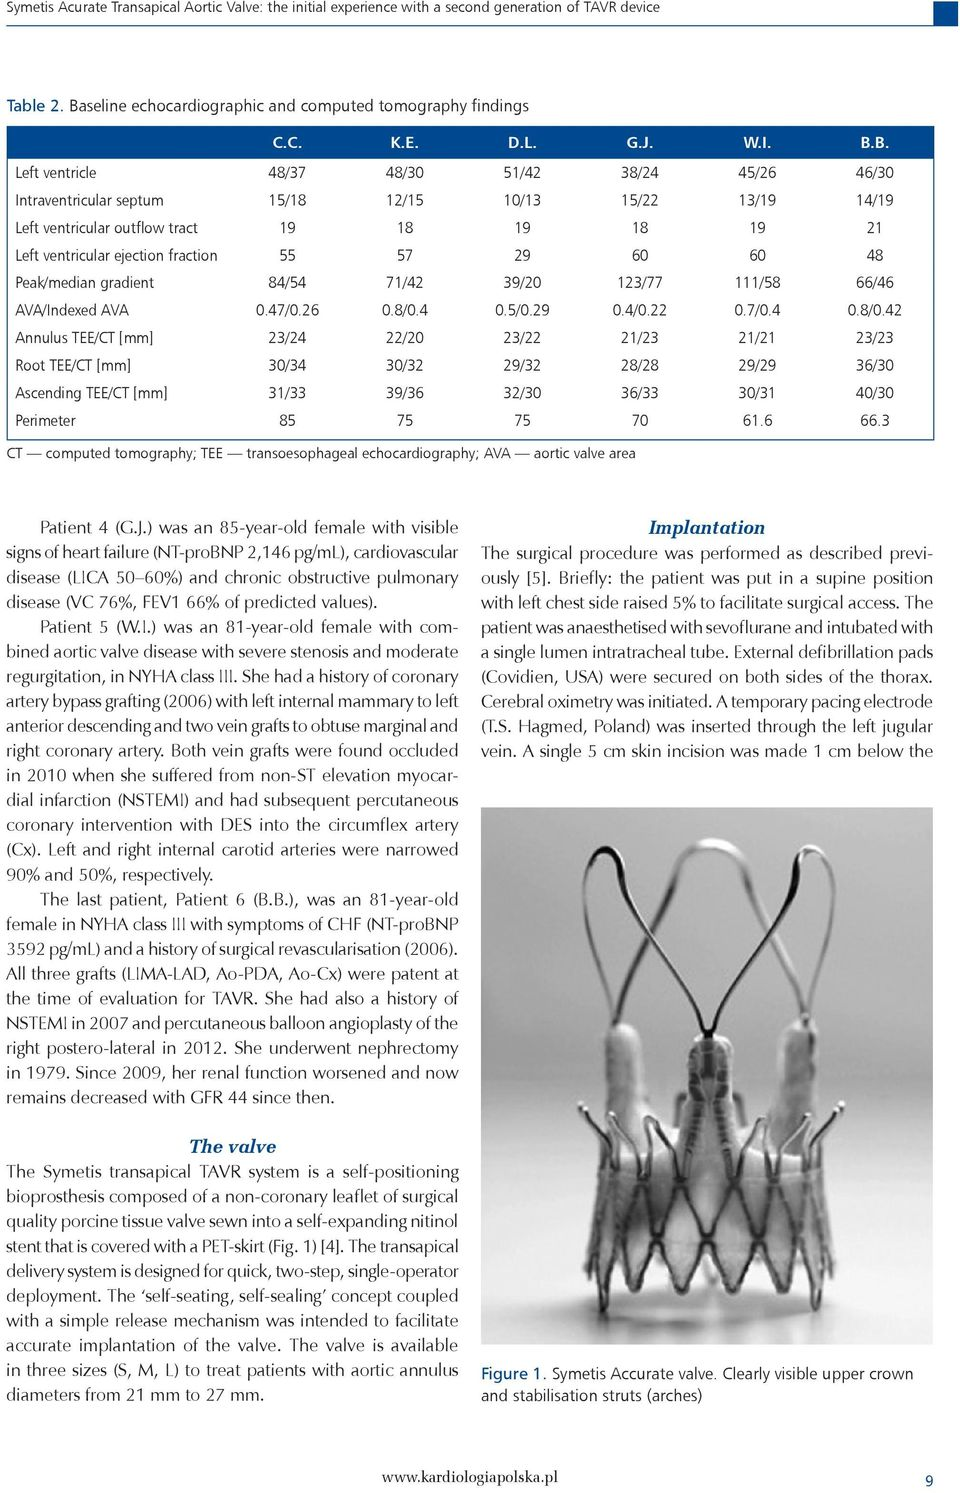 tract 19 18 19 18 19 21 Left ventricular ejection fraction 55 57 29 60 60 48 Peak/median gradient 84/54 71/42 39/20 123/77 111/58 66/46 AVA/Indexed AVA 0.47/0.26 0.8/0.